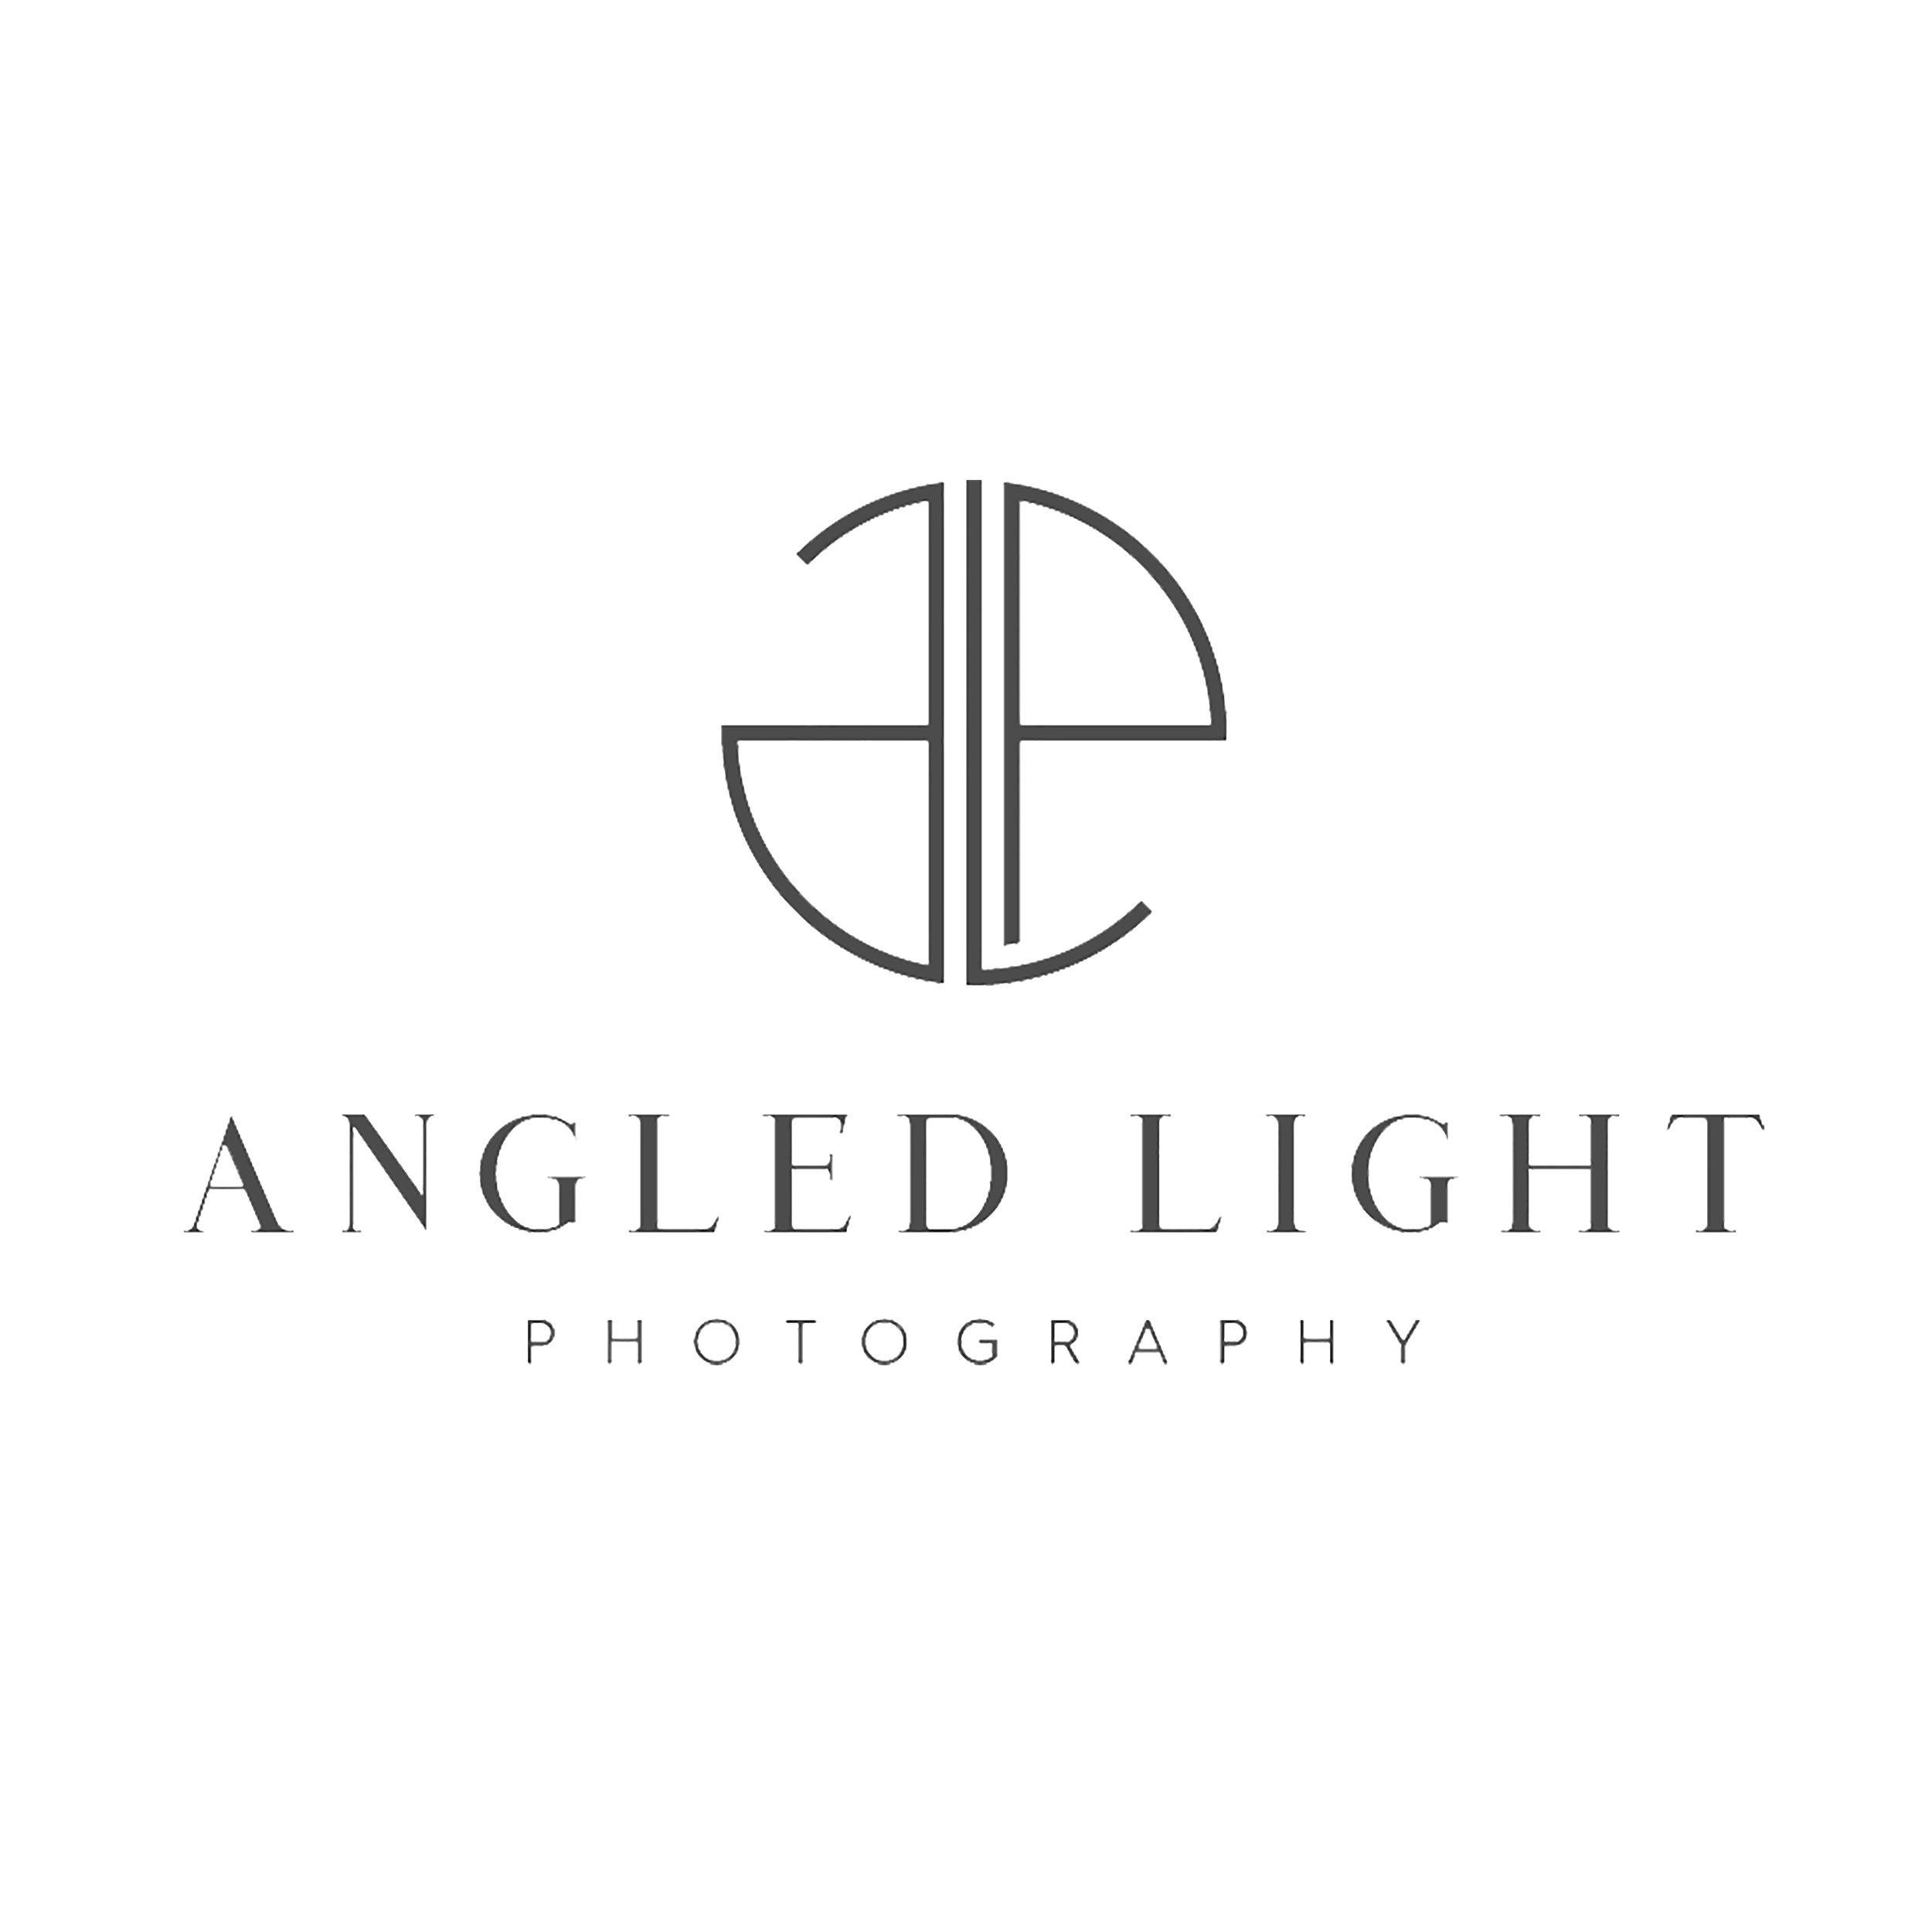 Angled Light Photography